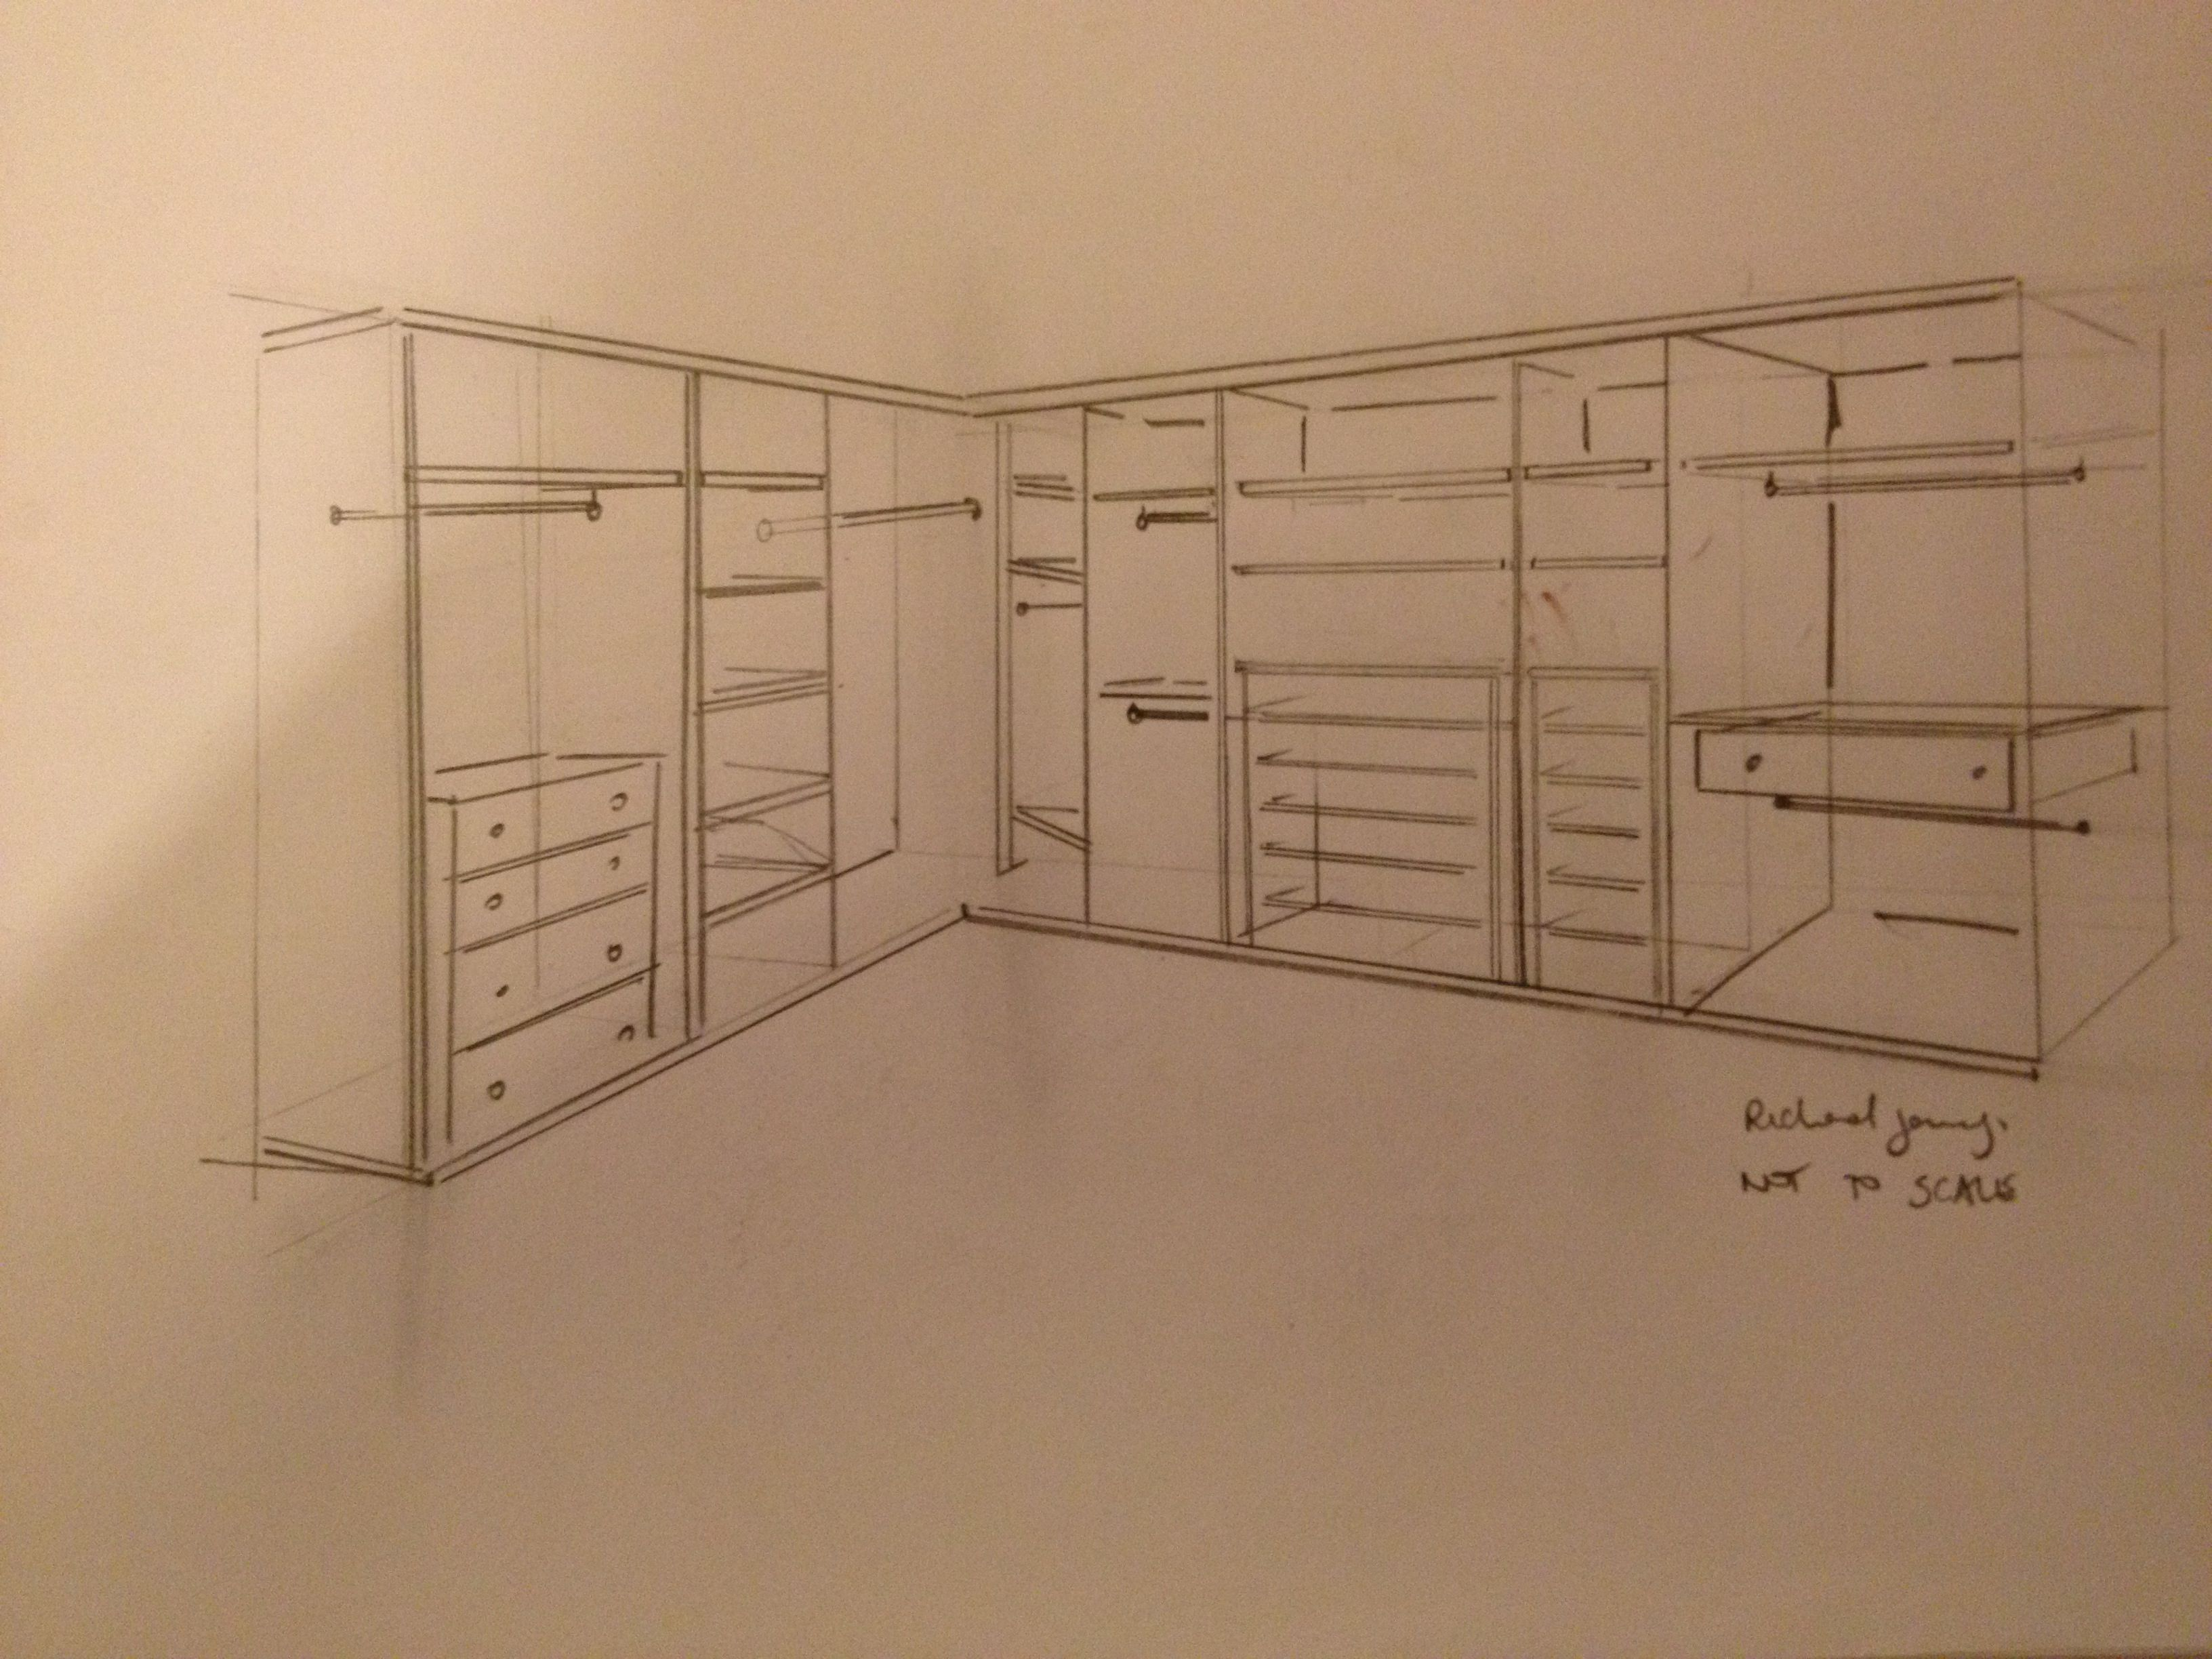 A rough sketch for a recent quote wardrobe interior